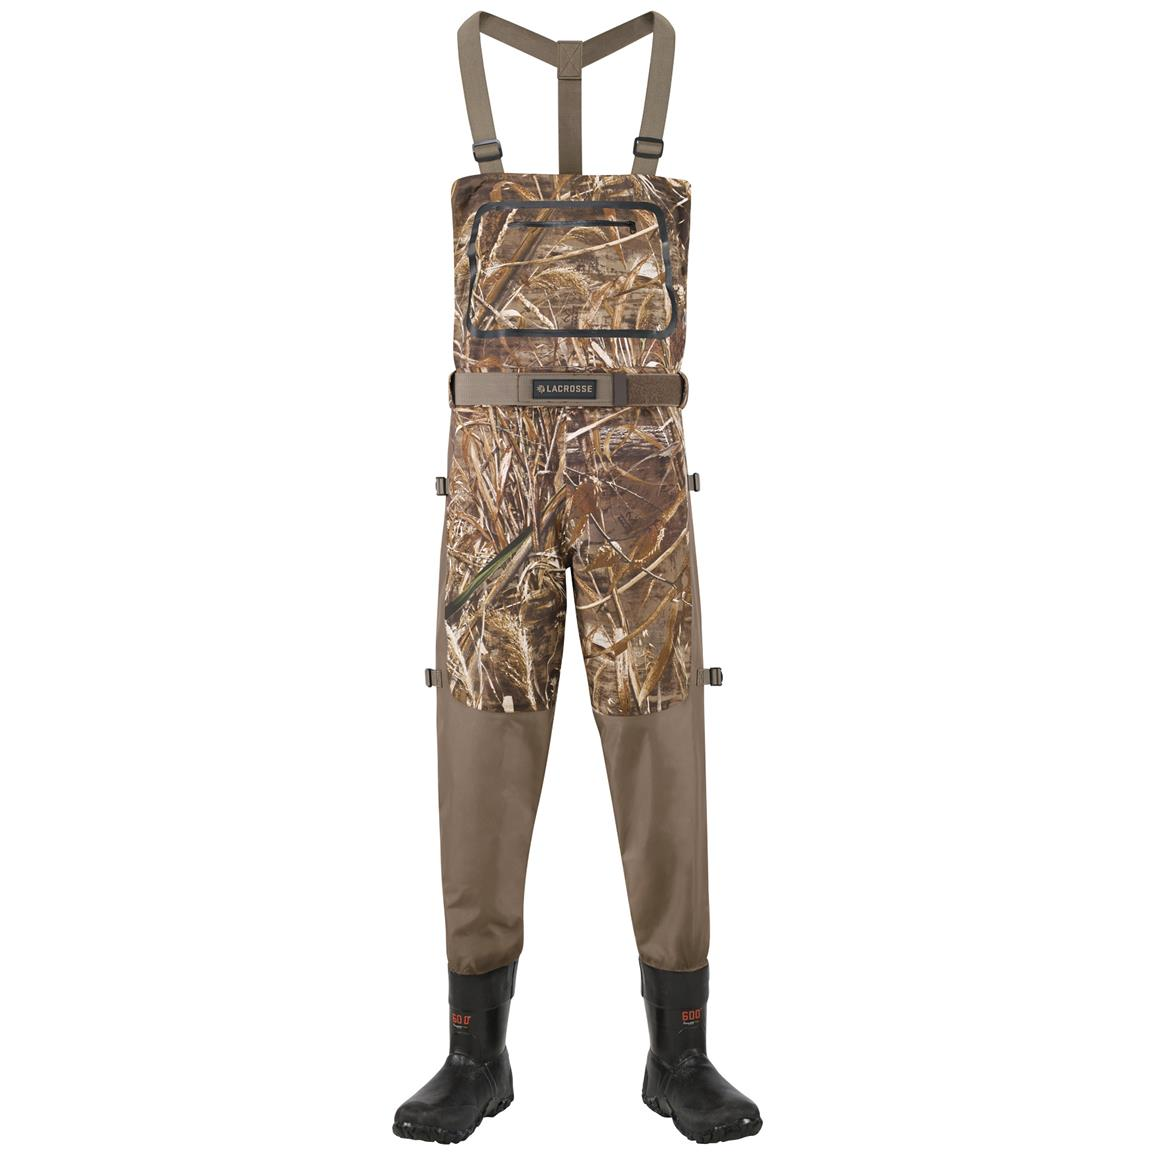 Men's Lacrosse 600 gram Thinsulate Ultra Alpha Swampfox Drop Top Waders, Realtree MAX-5 Camo - Front view